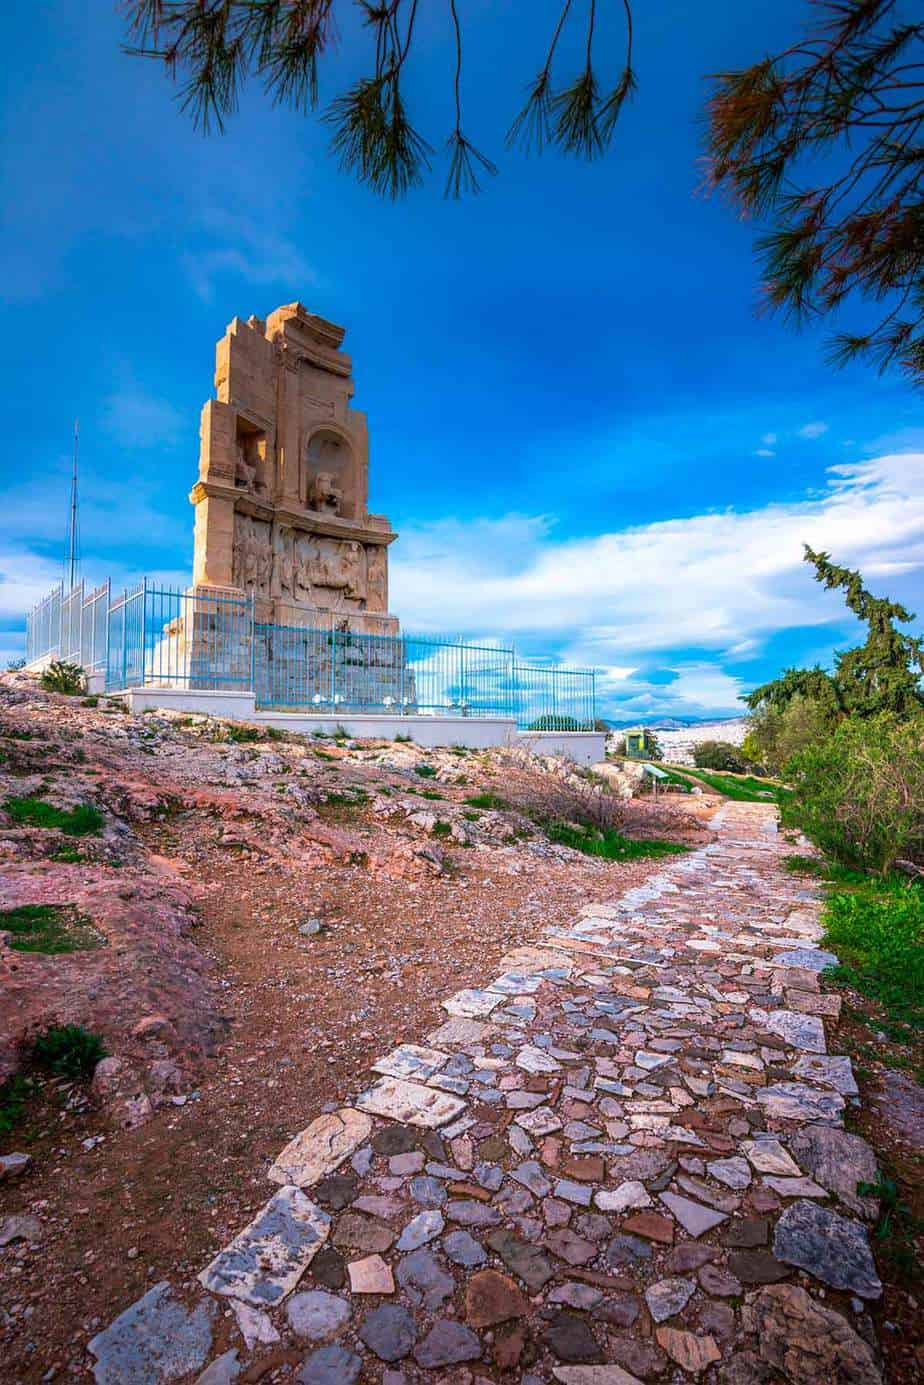 Philopappos Monument is located in one of the best cities in Greece